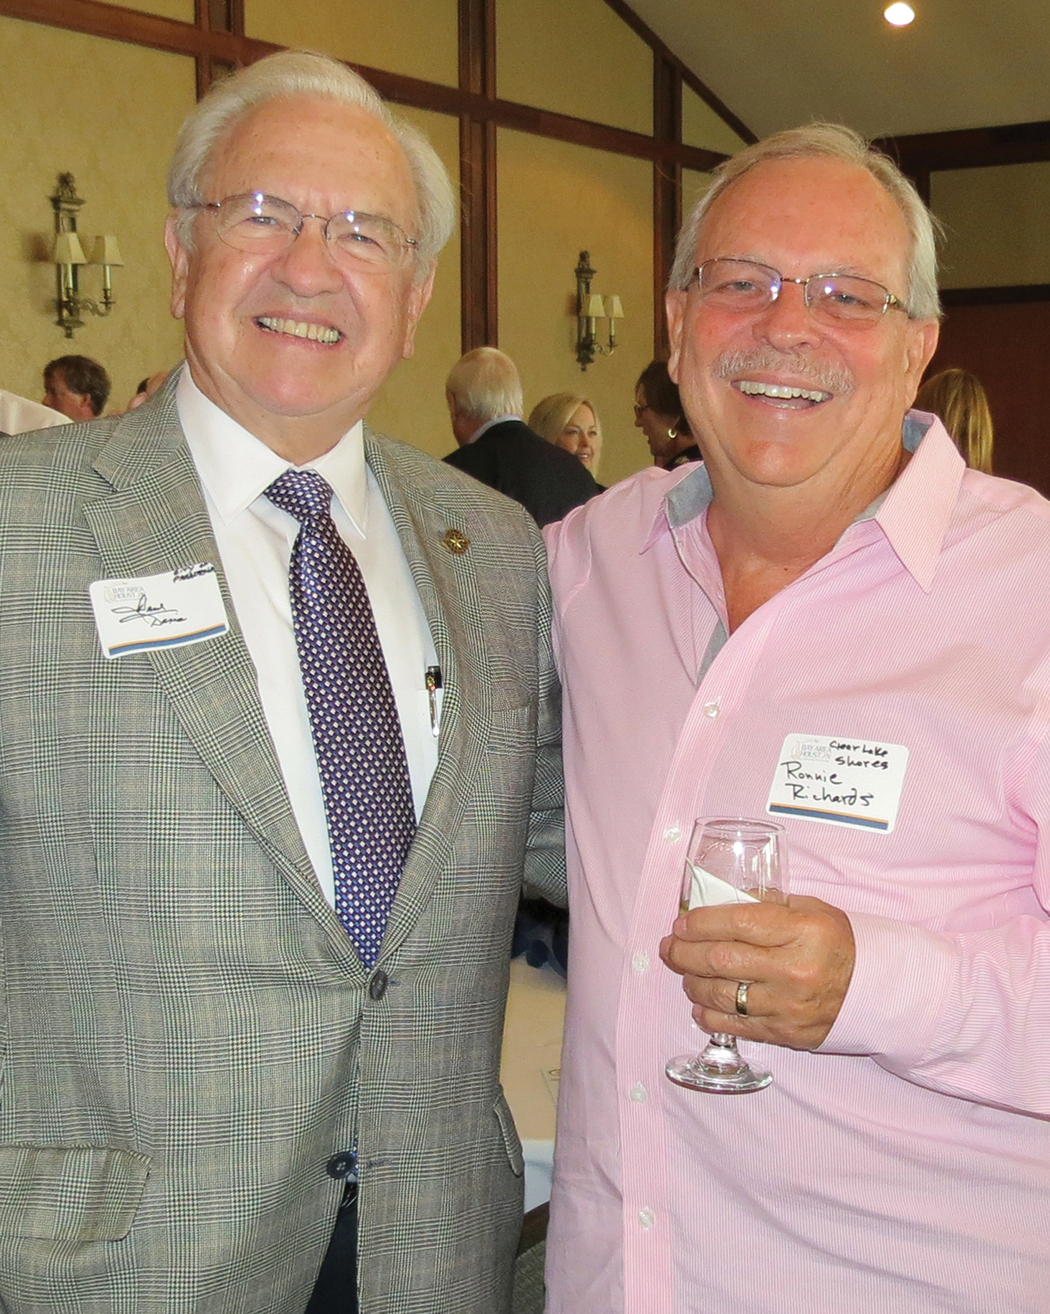 Pasadena Director of Economic Development Paul Davis, left, shares a light moment with Clear Lake Shores Director of Economic Development Ronnie Richards during BAHEP reception.